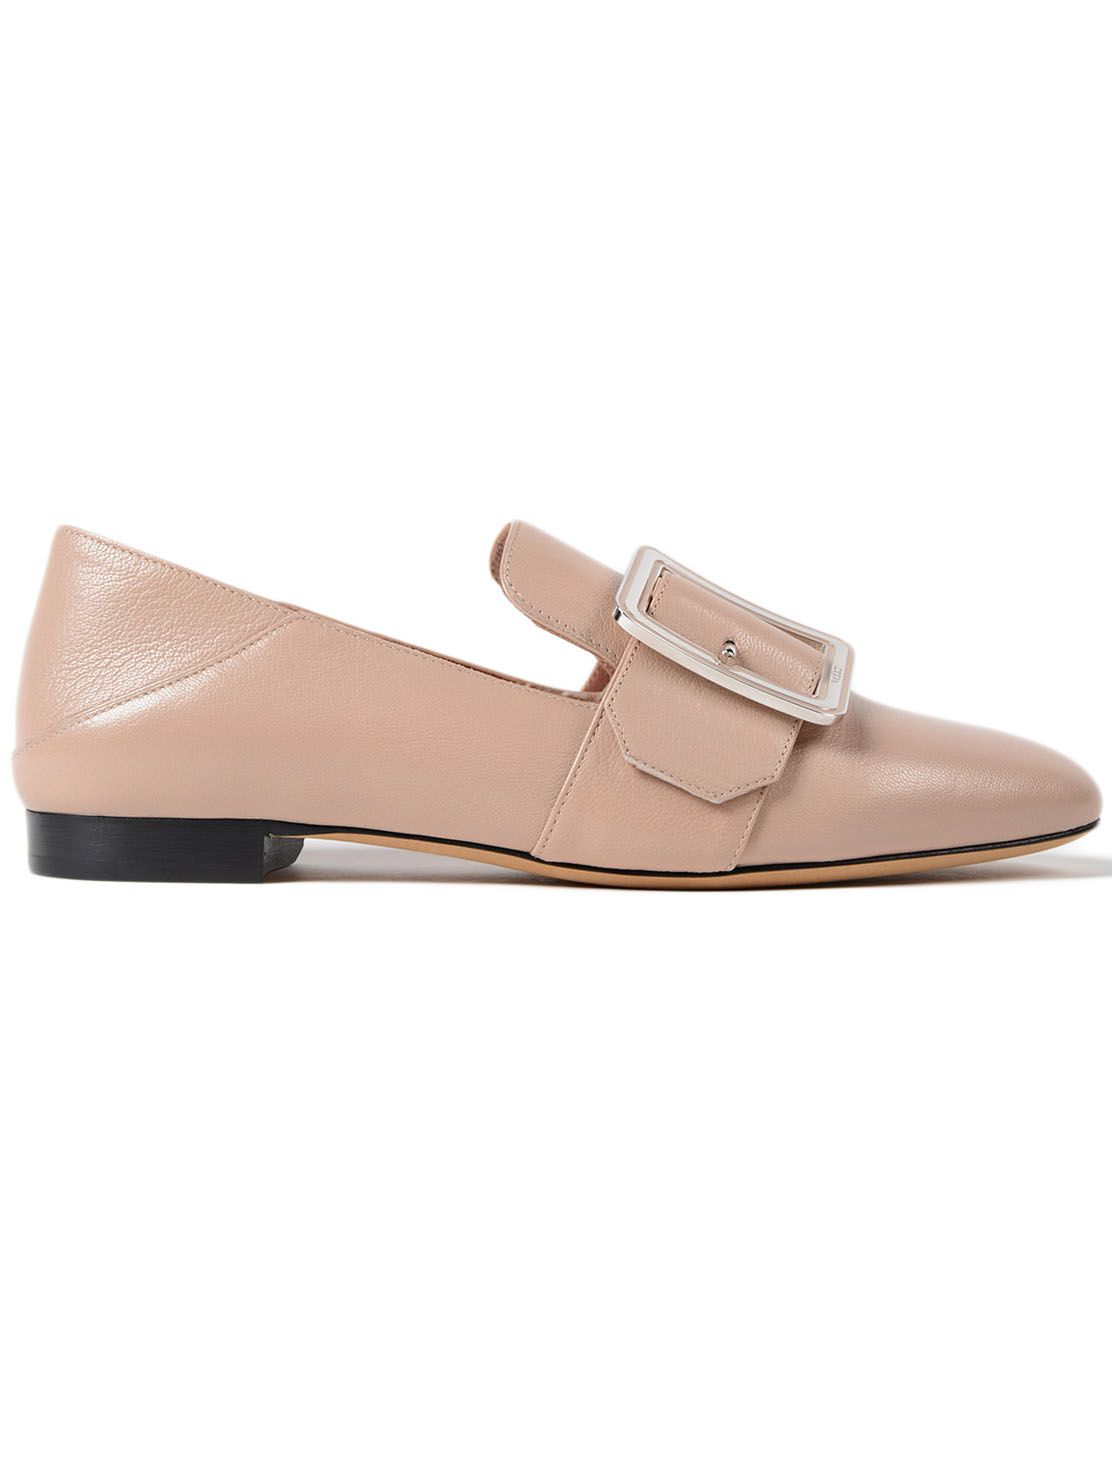 Bally Janelle Slippers